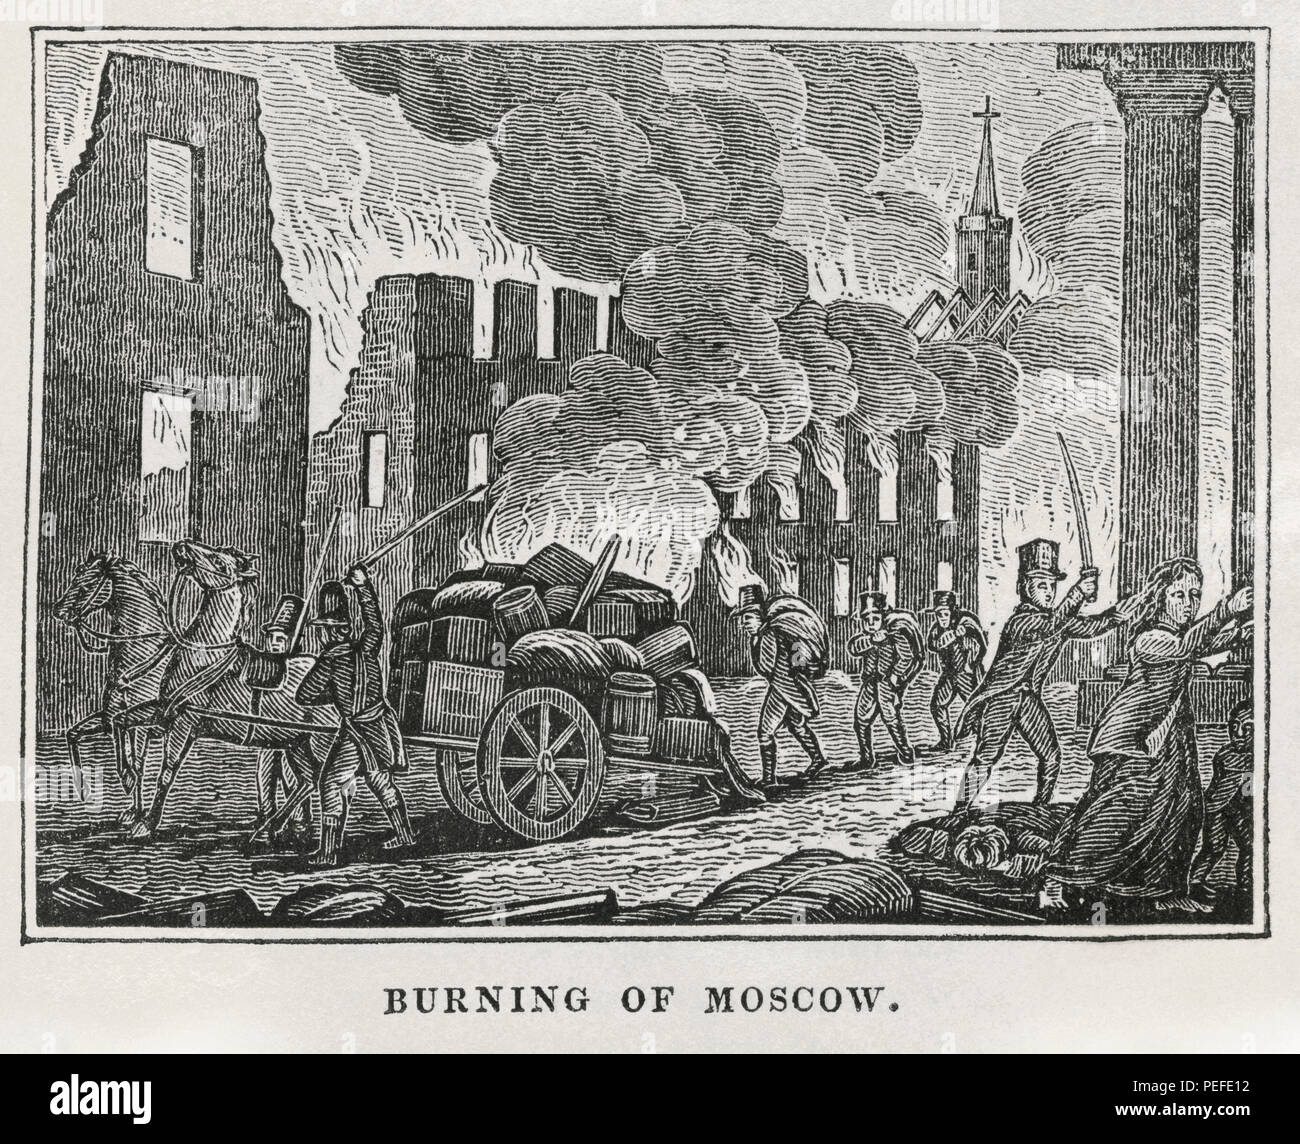 Burning of Moscow, 1812, Illustration from the Book, Historical Cabinet, L.H. Young Publisher, New Haven, 1834 - Stock Image